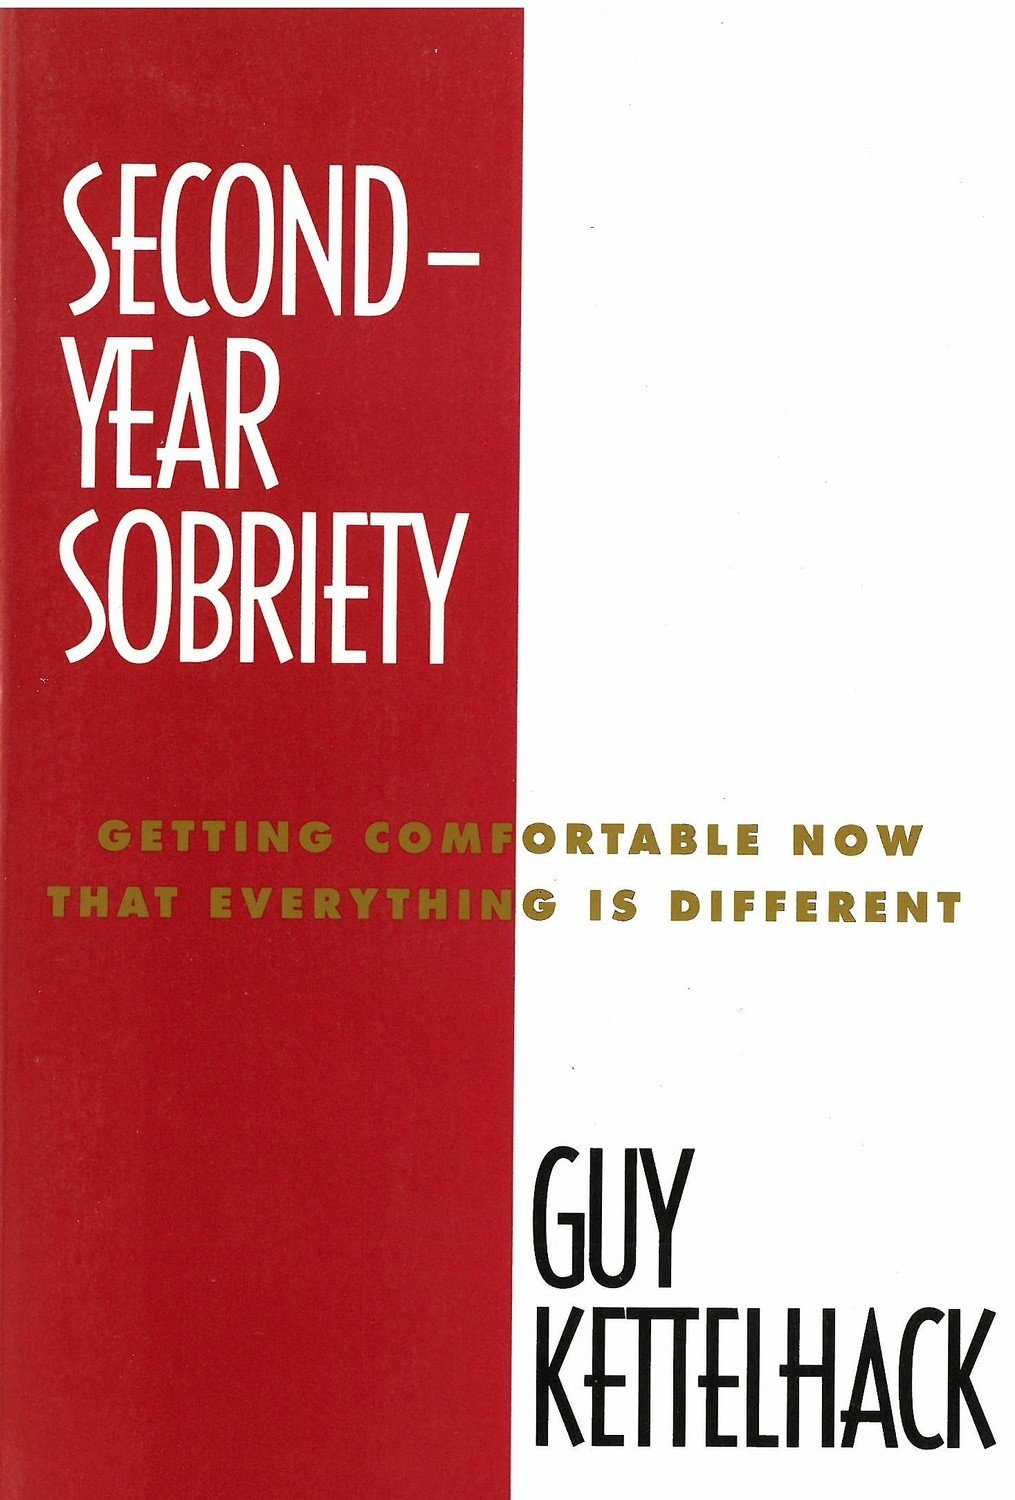 Second-Year Sobriety: Getting Comfortable Now That Everything Has Changed (Harper Sobriety, Vol. 2)